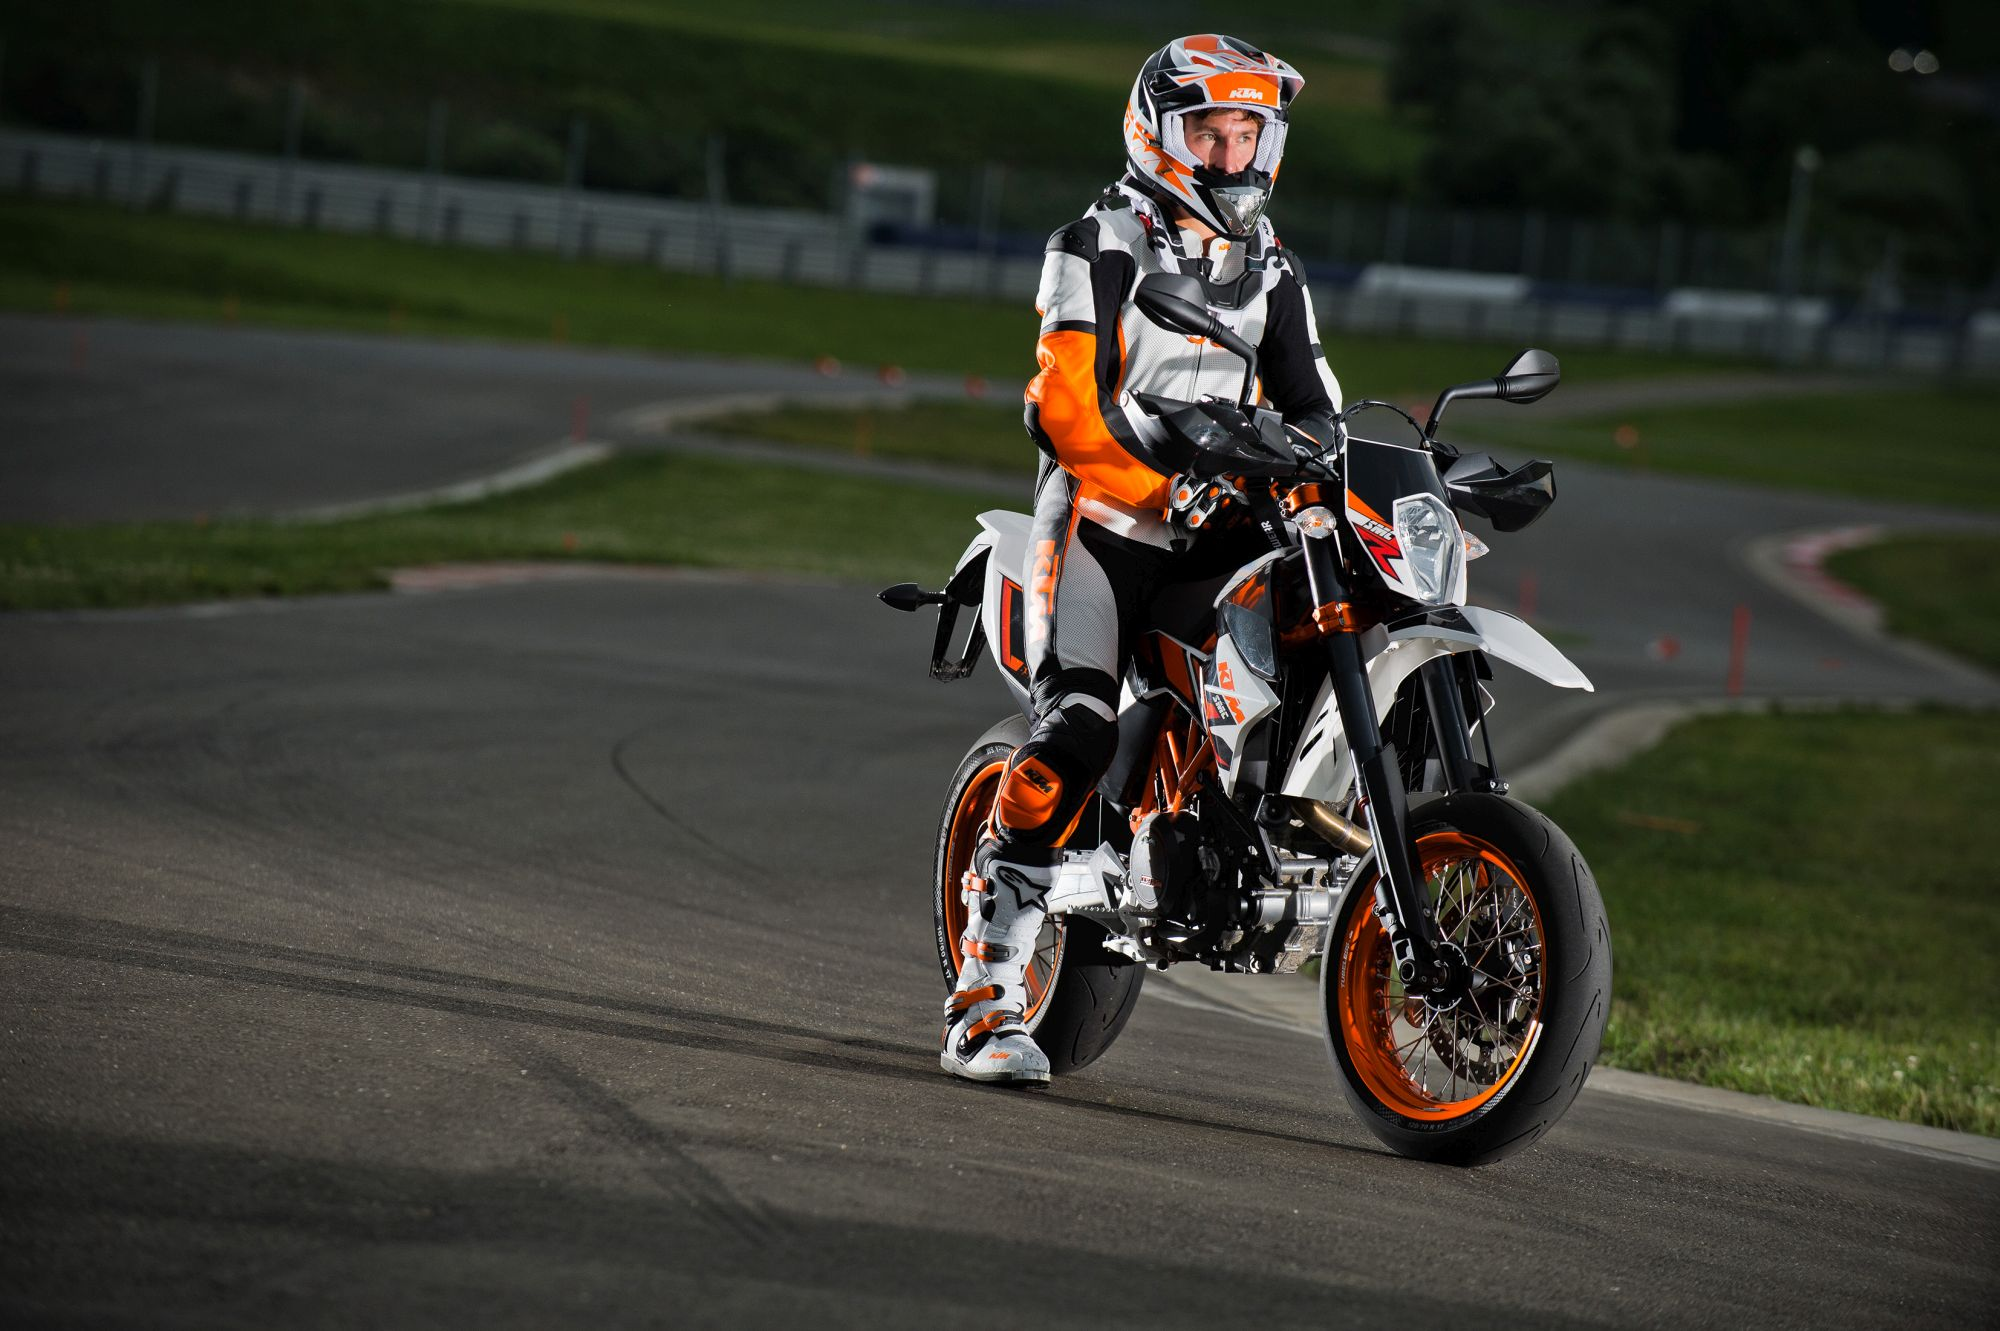 ktm 690 smc r alle technischen daten zum modell 690 smc r von ktm. Black Bedroom Furniture Sets. Home Design Ideas